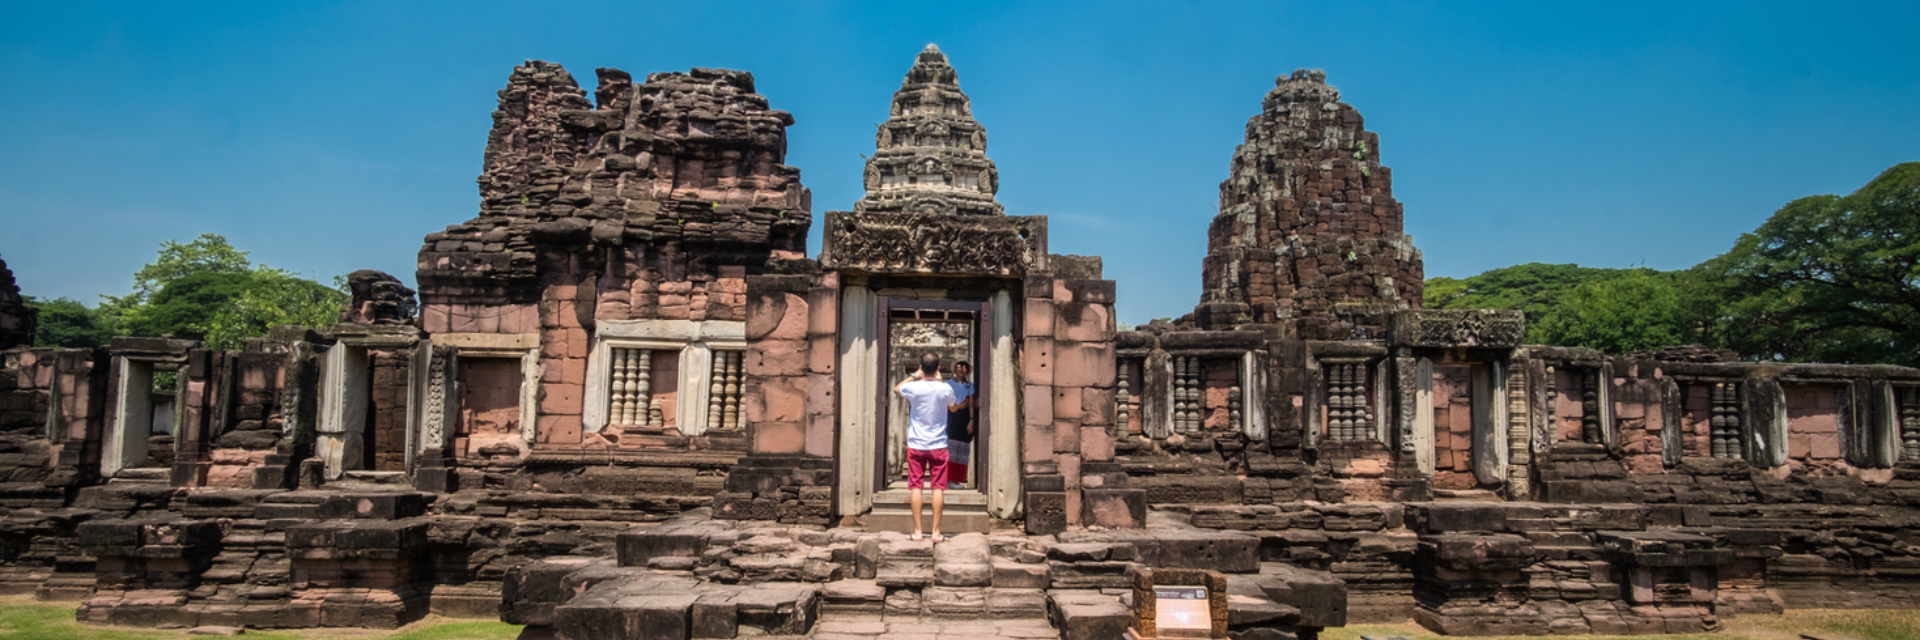 5 Inspiring Historical Sites to Visit in Thailand